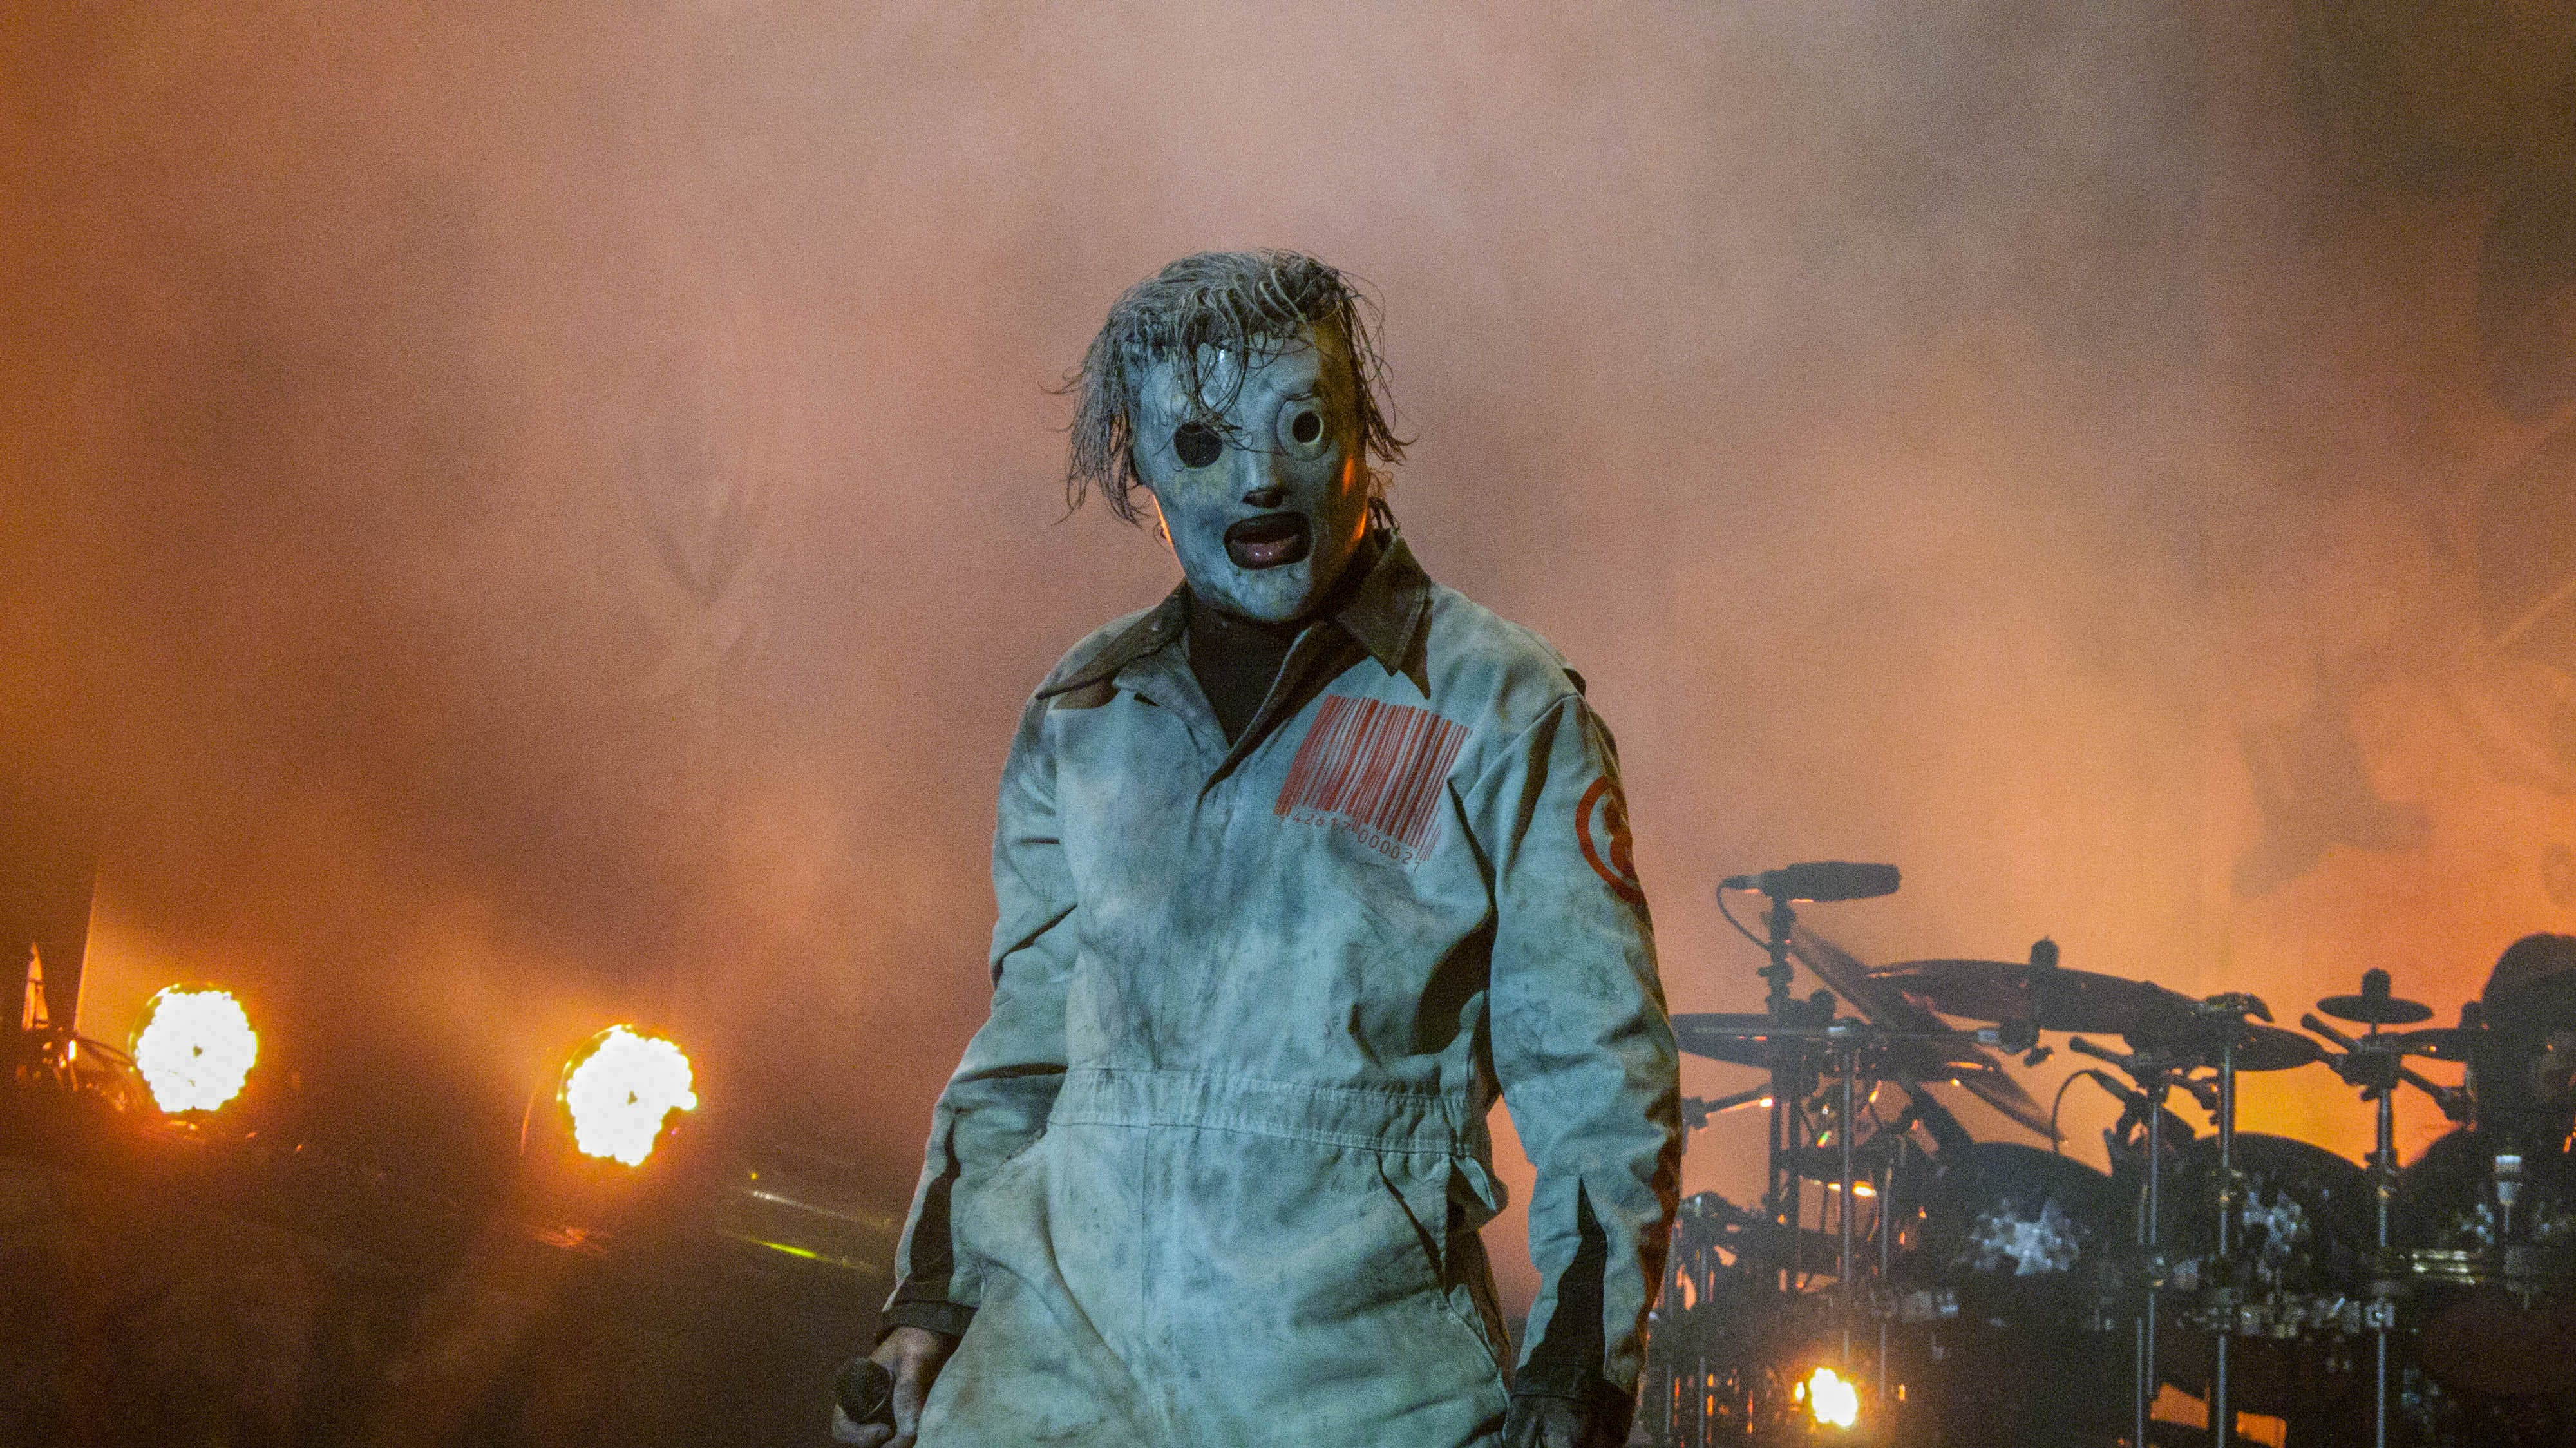 Free stock photo of Slipknot - Graspop 2013